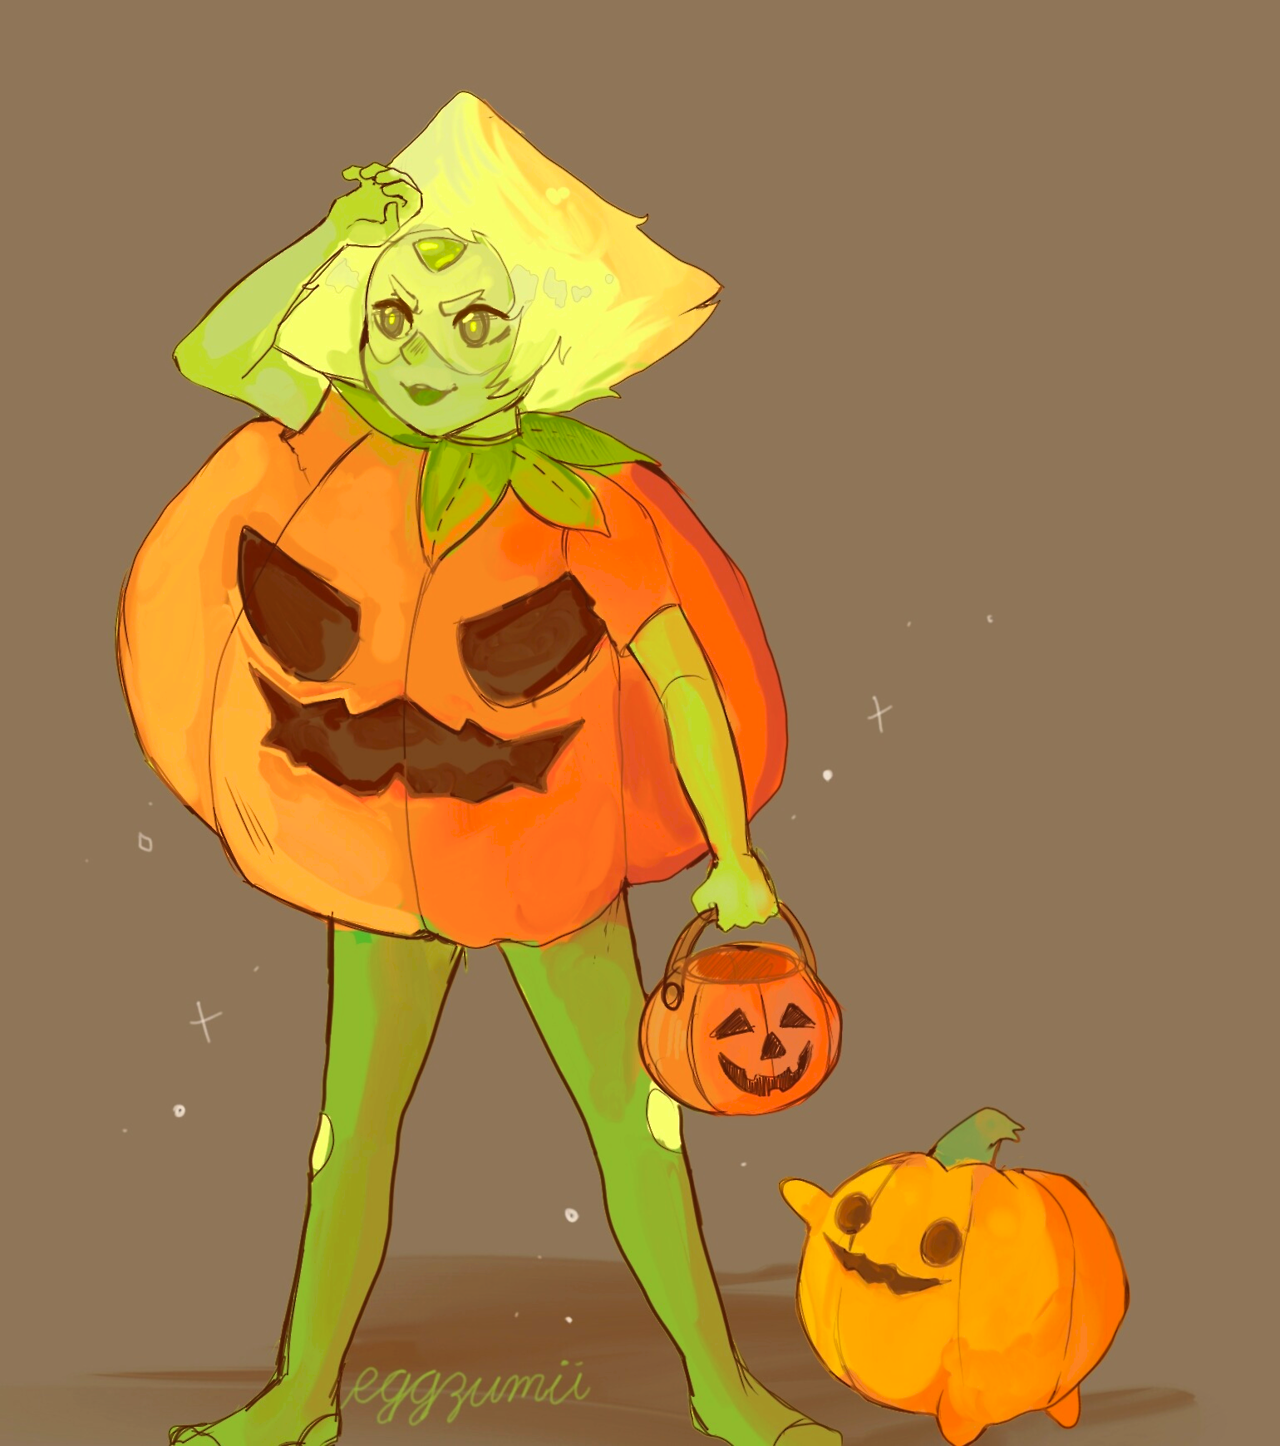 (belated) happy halloween!! :} steven universe resumes this november!! yay!